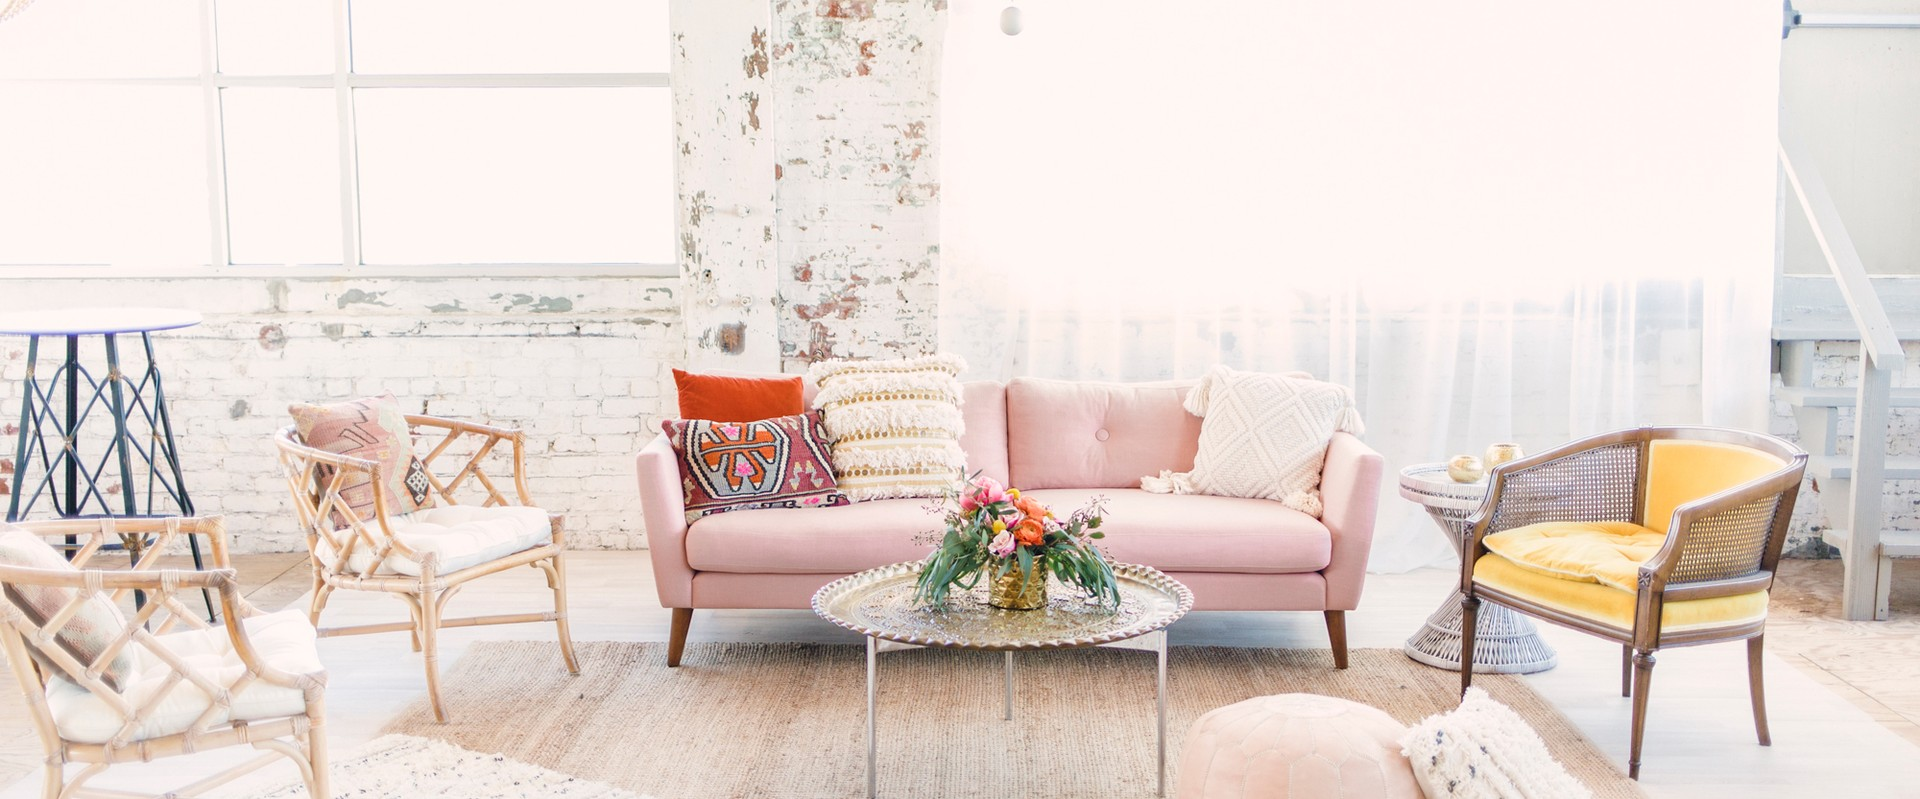 How to Create a Wedding Lounge Area with Gather and Lounge